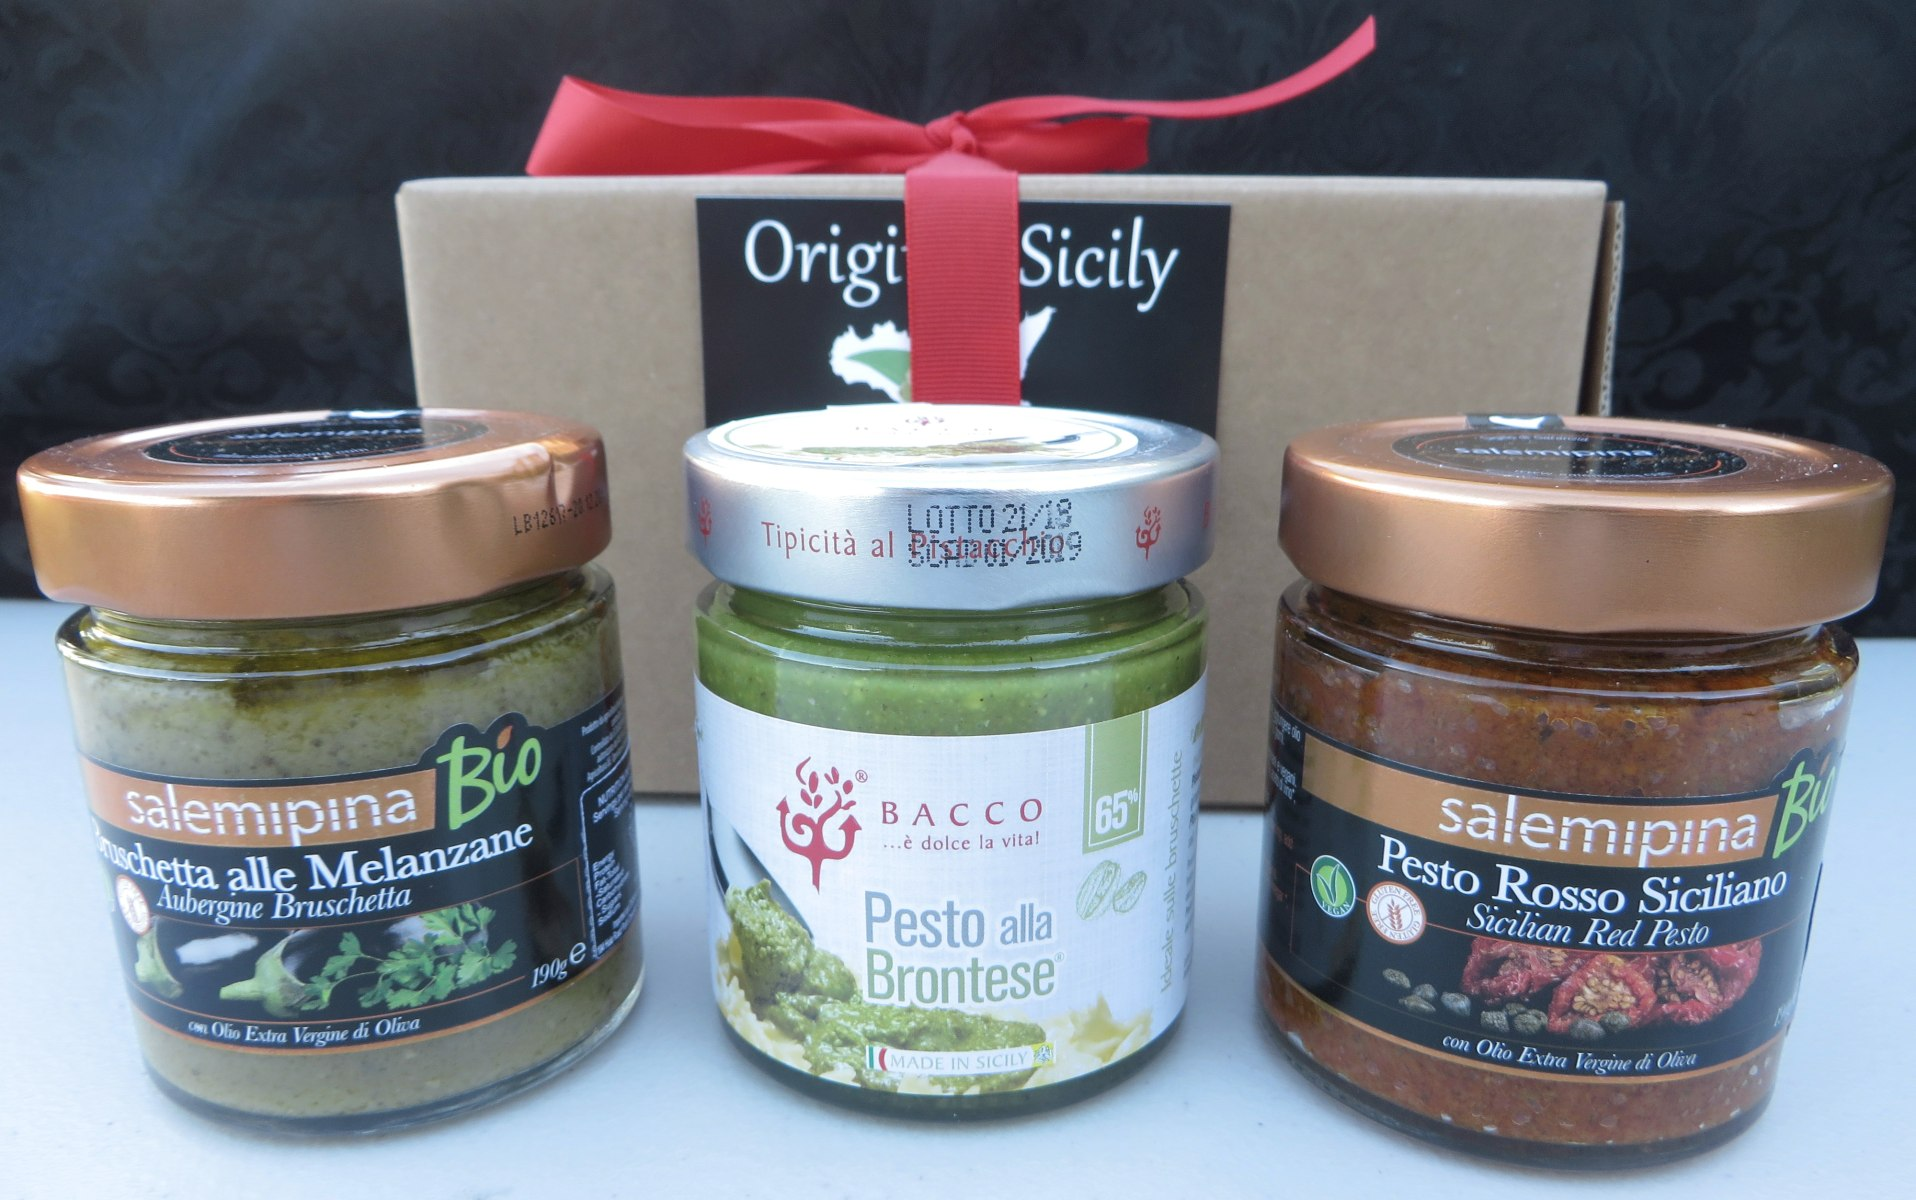 Trio of Sicilian Pesto